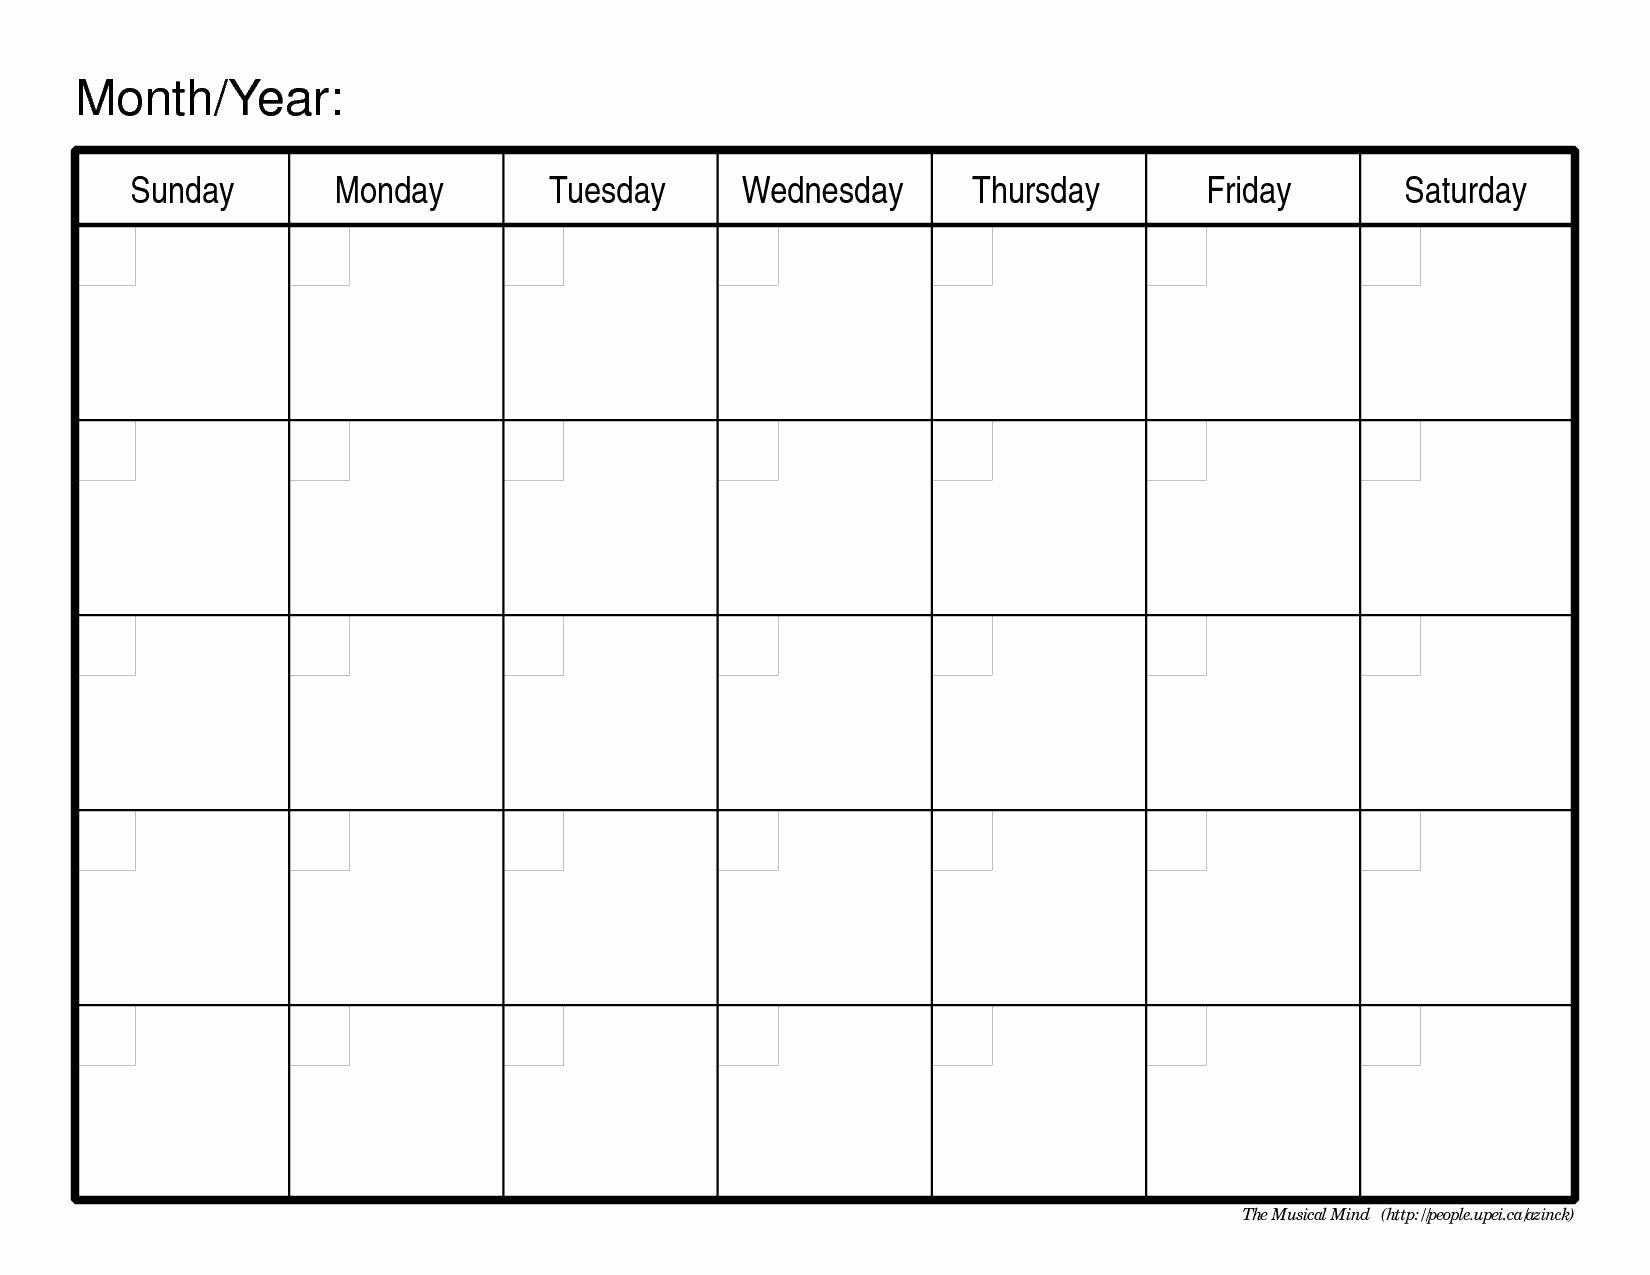 Free Calendars To Print Without Downloading – Template Fill Out A Calender Online And Print Out